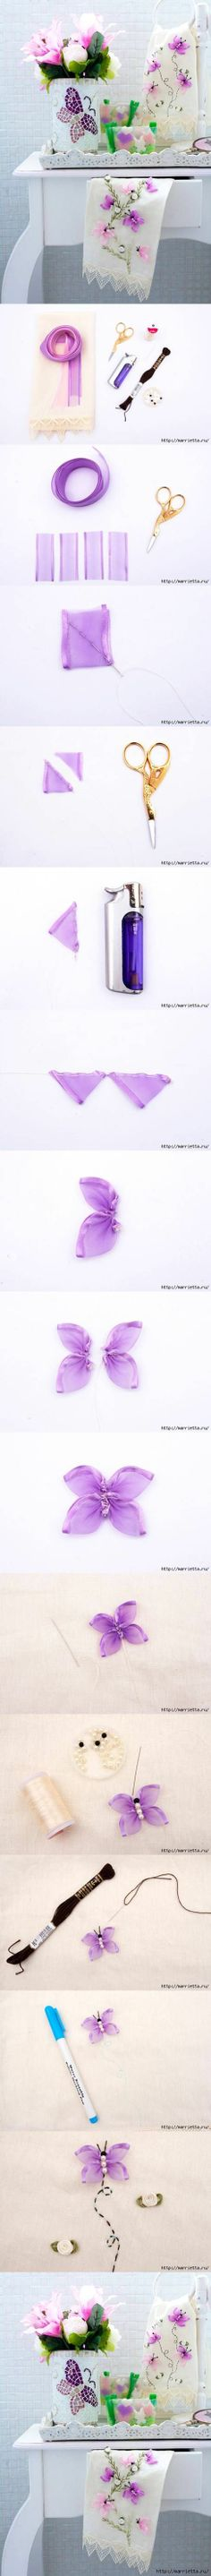 How to make Butterfly Hand Ribbon Embroidery DIY tutorial instructions / How To Instructions